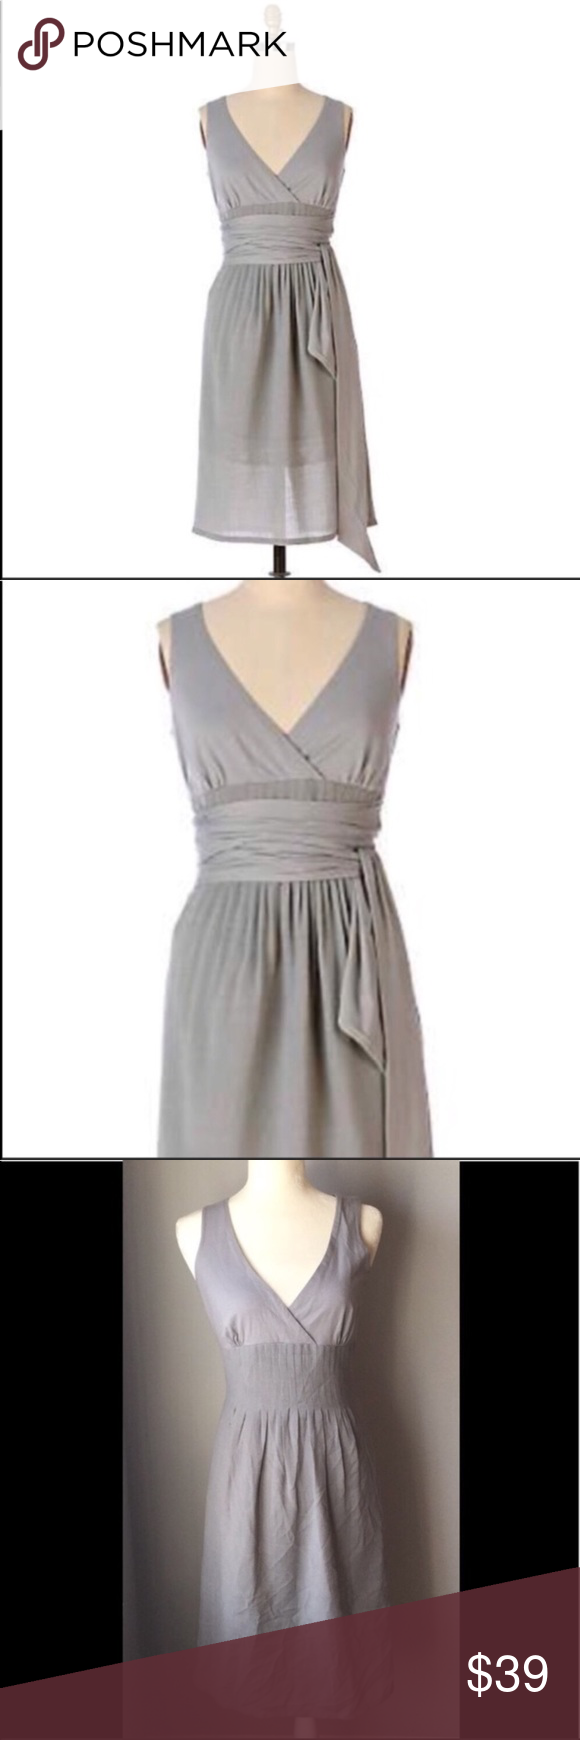 Anthropologie Fei Ethereal dress grey 8 Surplice jersey gives way to sheer and drifting gauze. By Fei.  Wraparound self-ties Back zip Wool, polyester, cotton; acetate lining Dry clean 38″L #0706  Anthropologie Fei Ethereal dress grey 8 Anthropologie Dresses